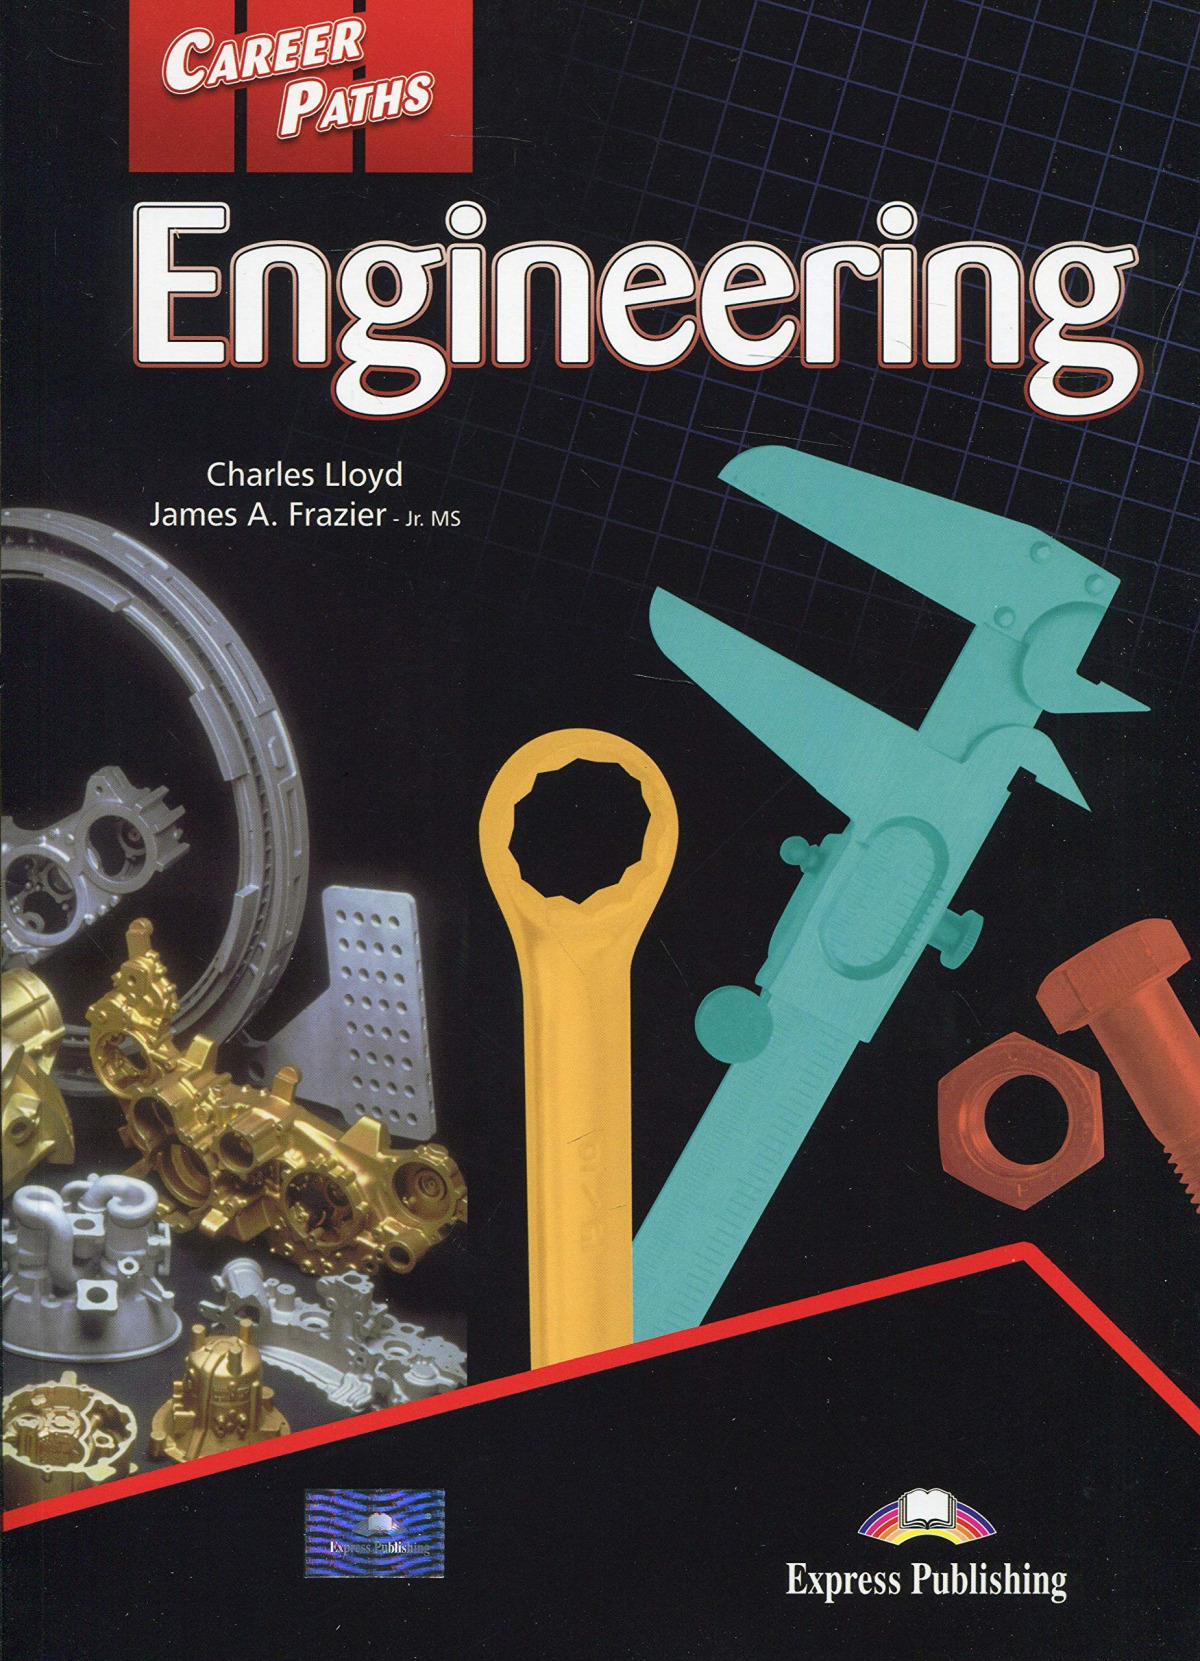 ENGINEERING STUDENT'S BOOK